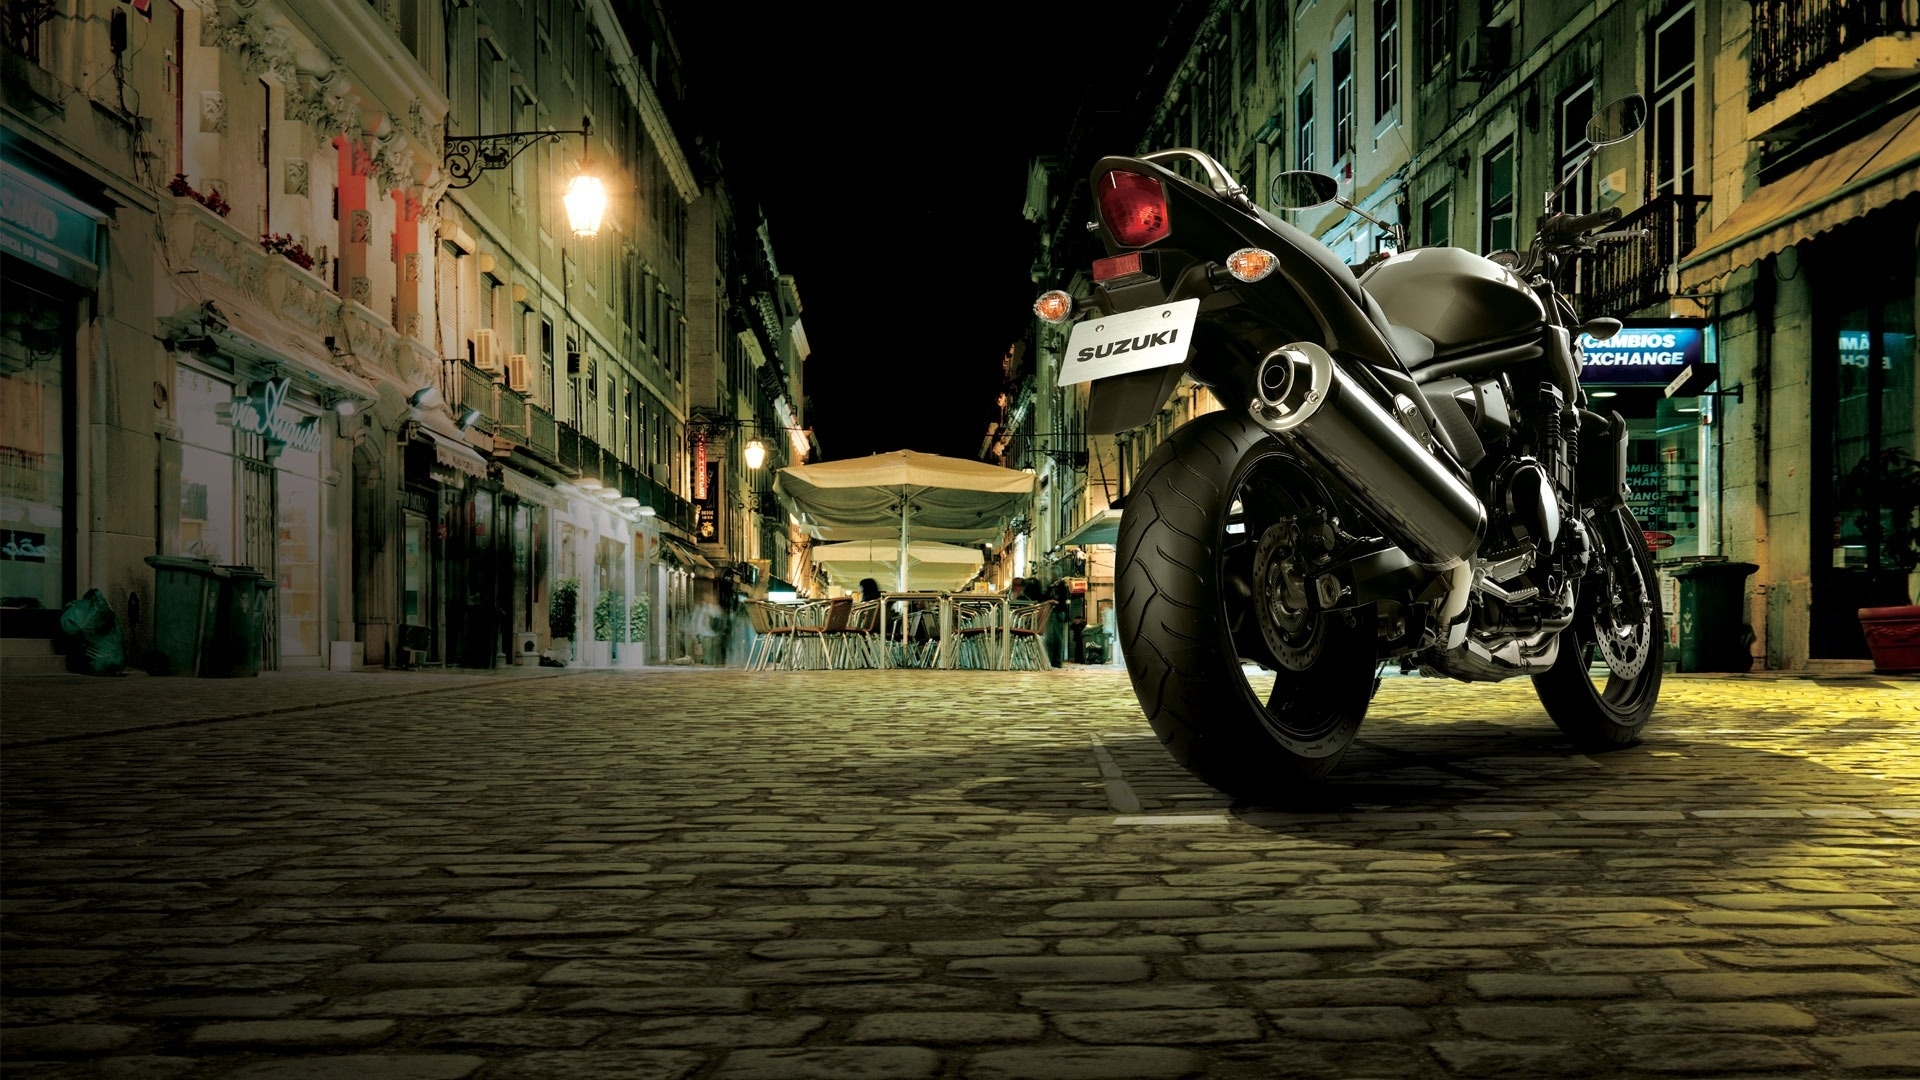 Image: Suzuki, motorcycle, bike, black, street, building, night, lighting